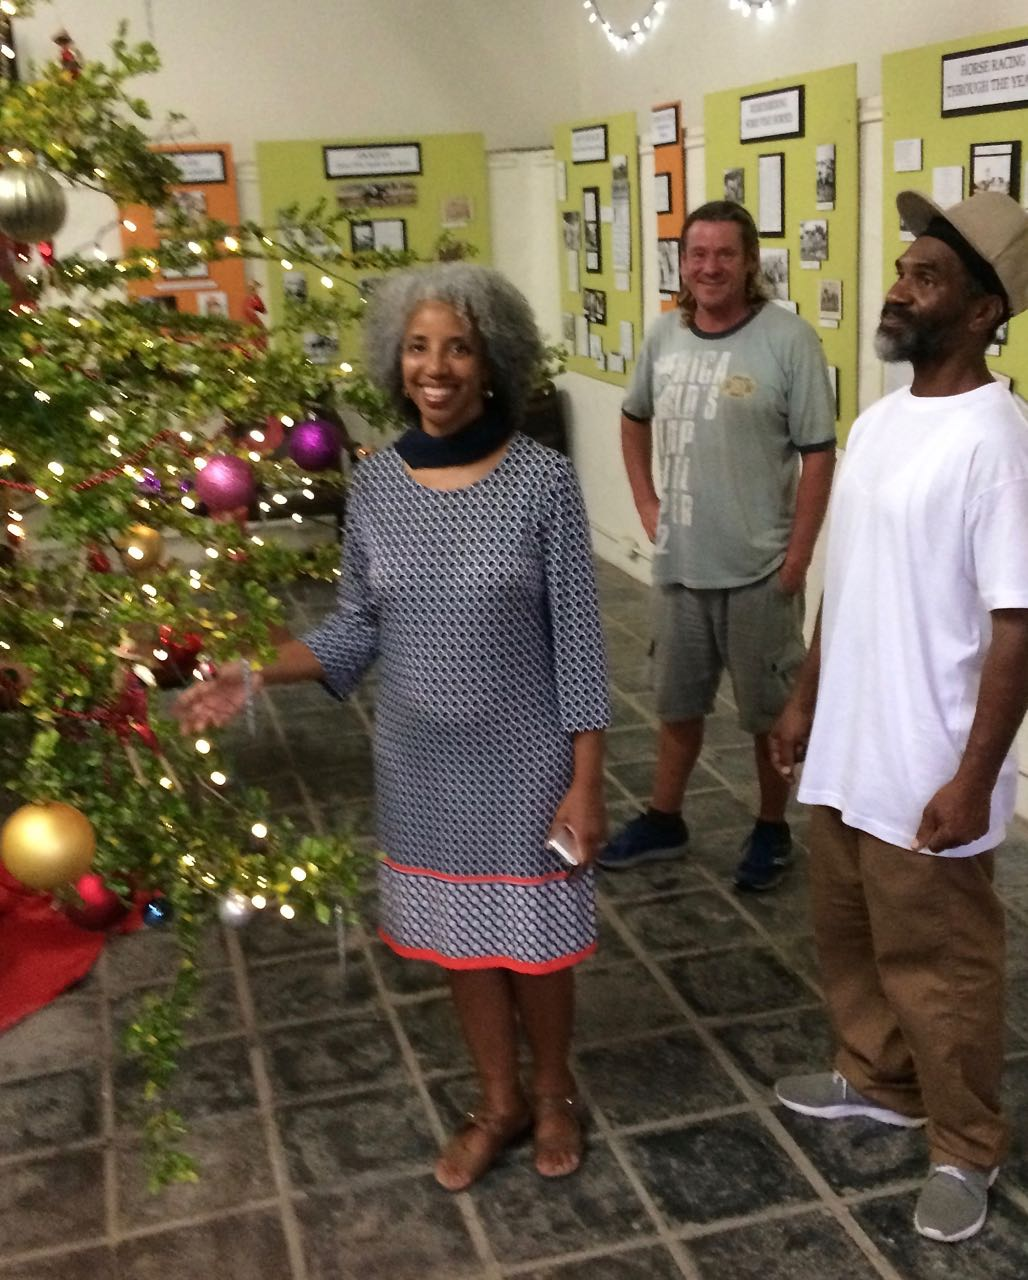 From left, Sonia Jacobs Dow, volunteer Chris Deiser and Anthony Alfred by the Inkberry Tree. (Source photo by Don Buchanan)